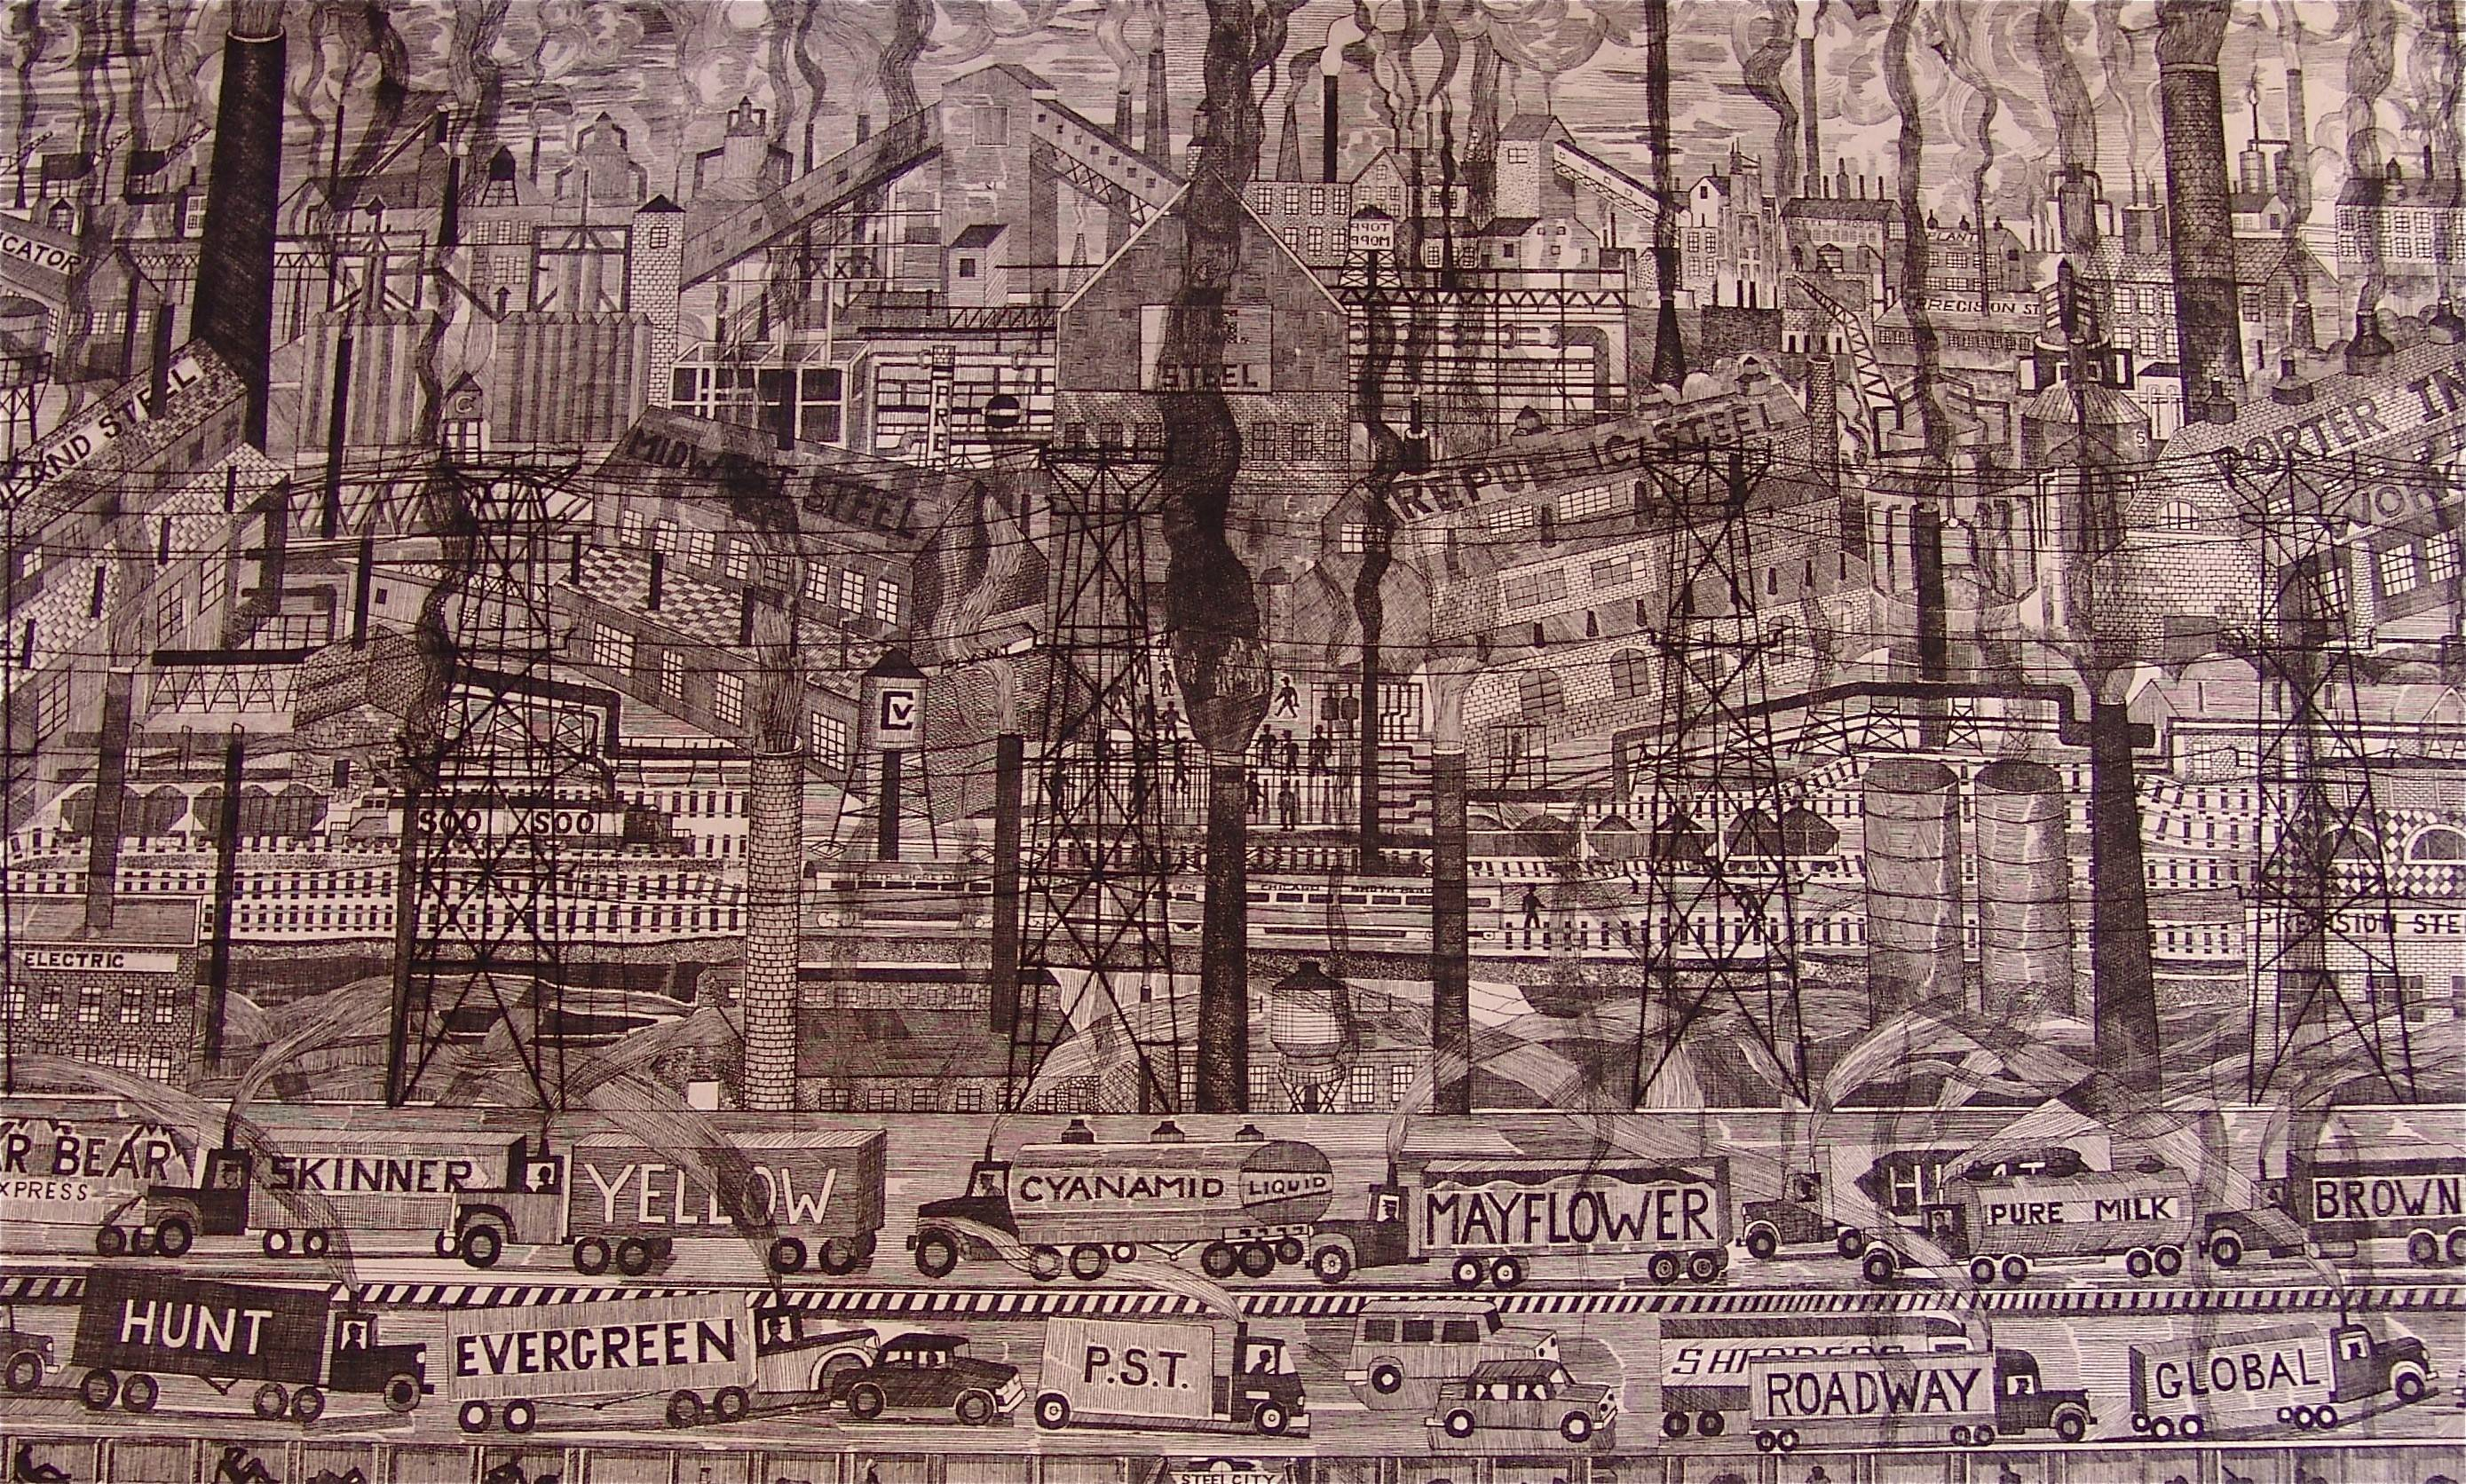 This is Steel City, one of John Knudsen's etchings completed in 1980.